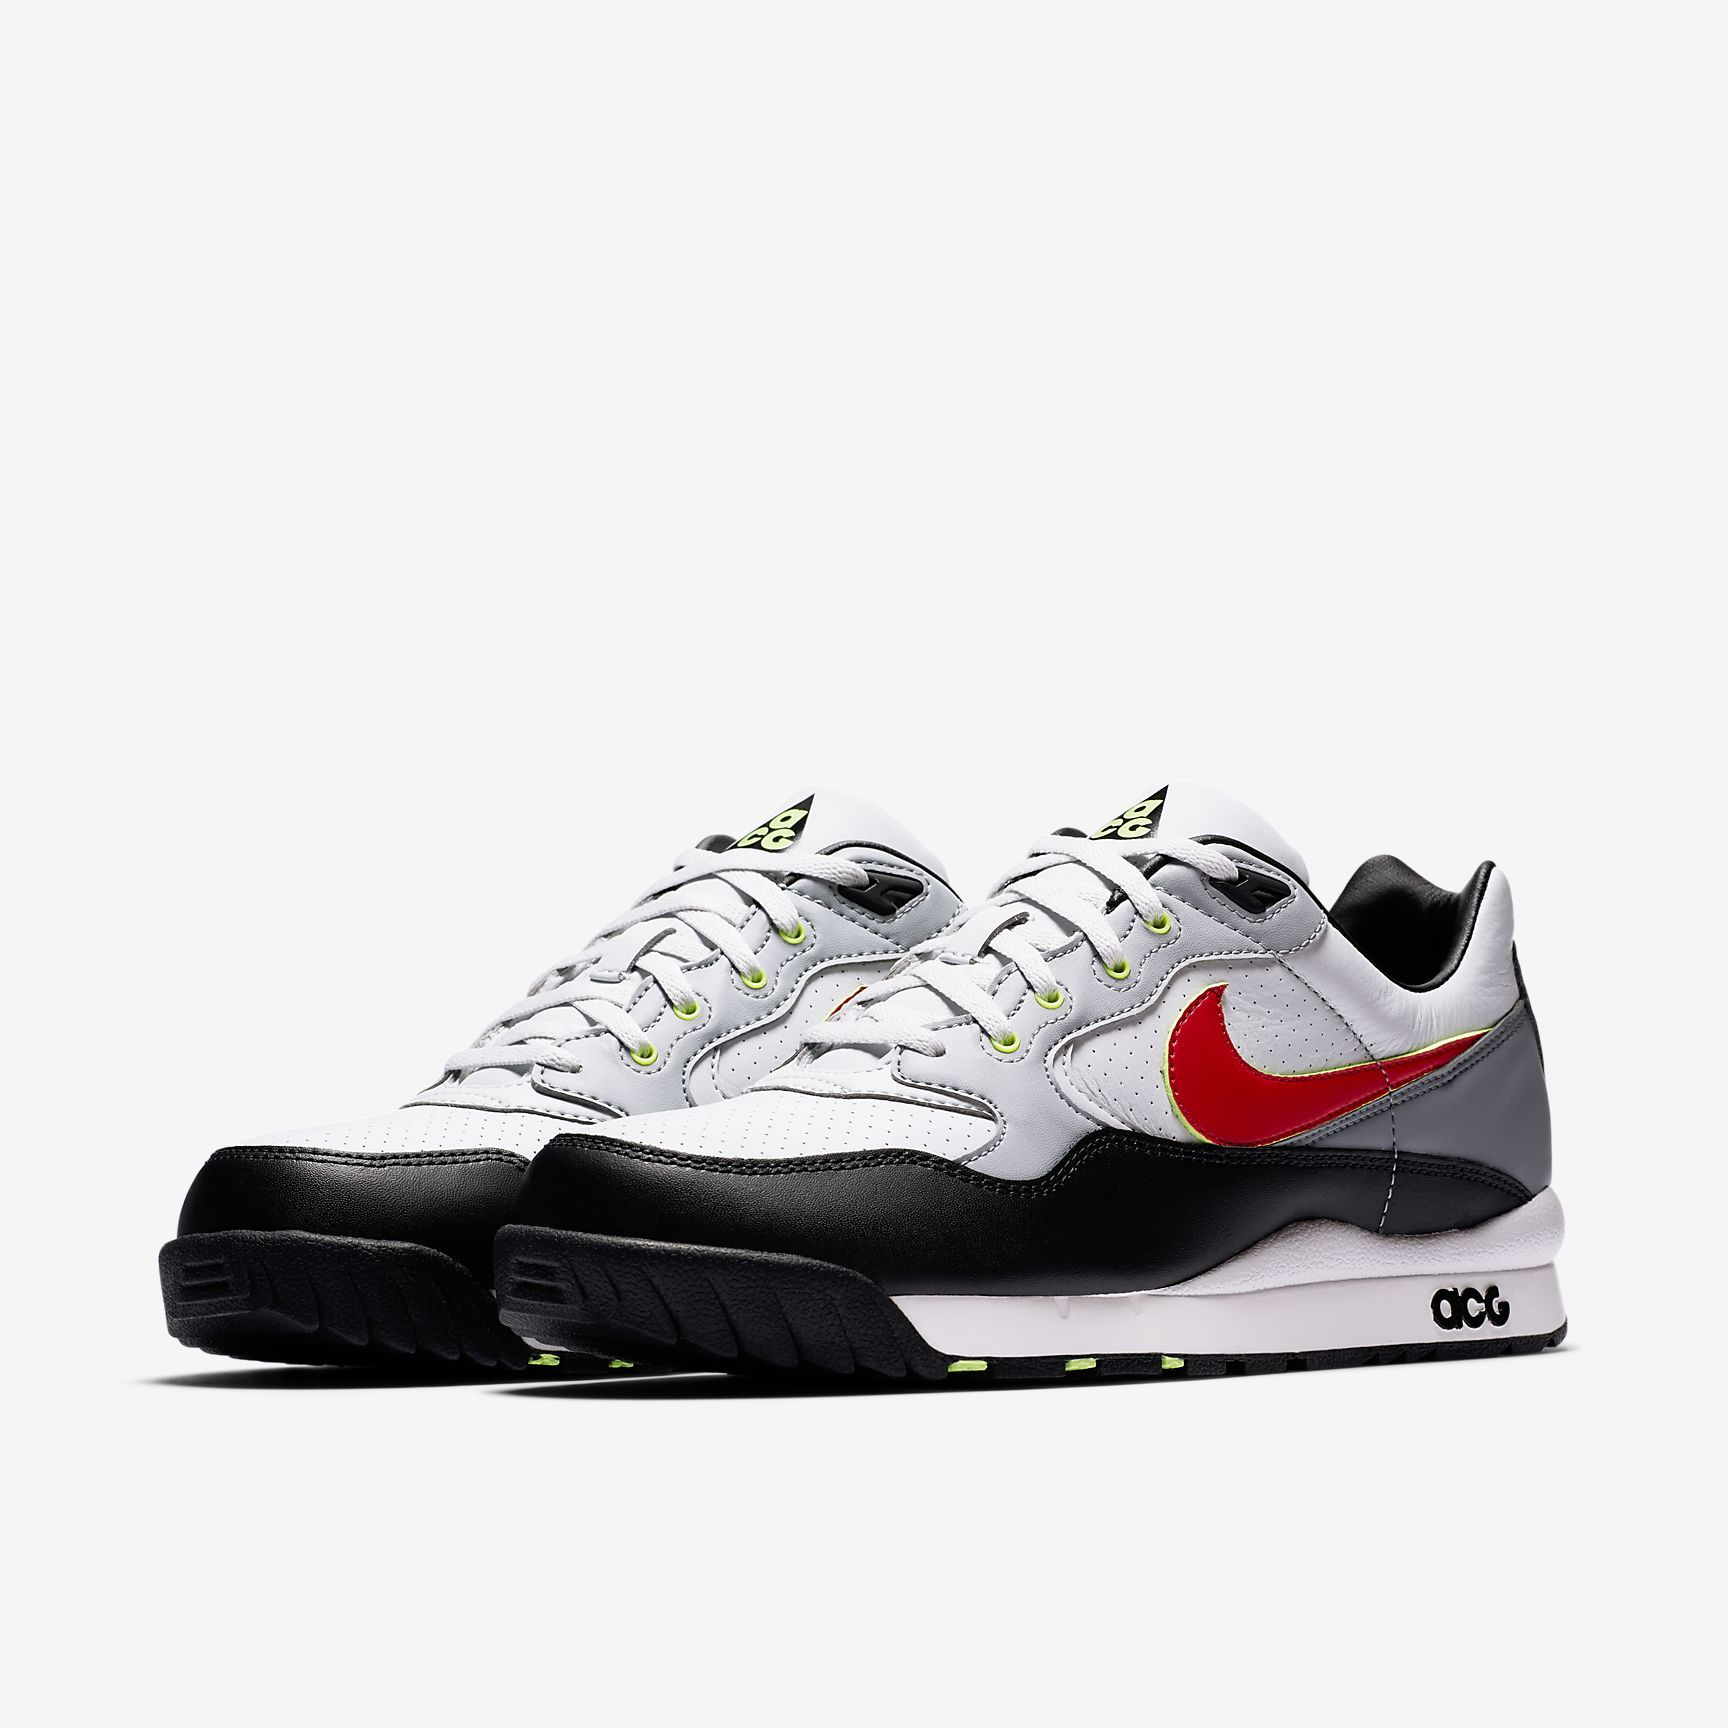 auricular Acusador Shuraba  Men's Nike Air Wildwood ACG in Pure Platinum/Mist Blue/Black/Comet Red via  Nike.com | Mens nike shoes, Nike, Mens nike air